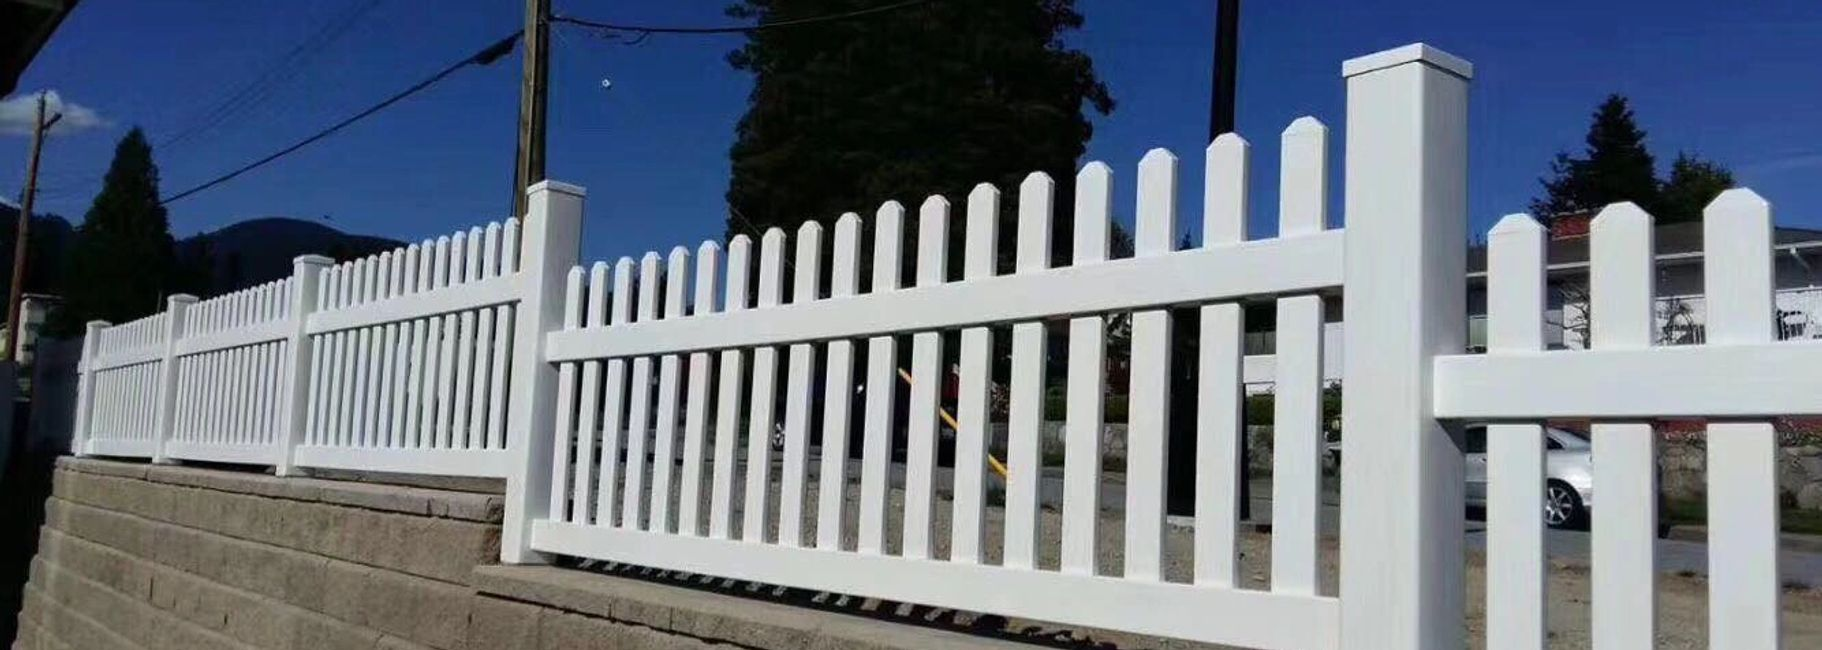 Vinyl Picket Fence on Retaining Wall